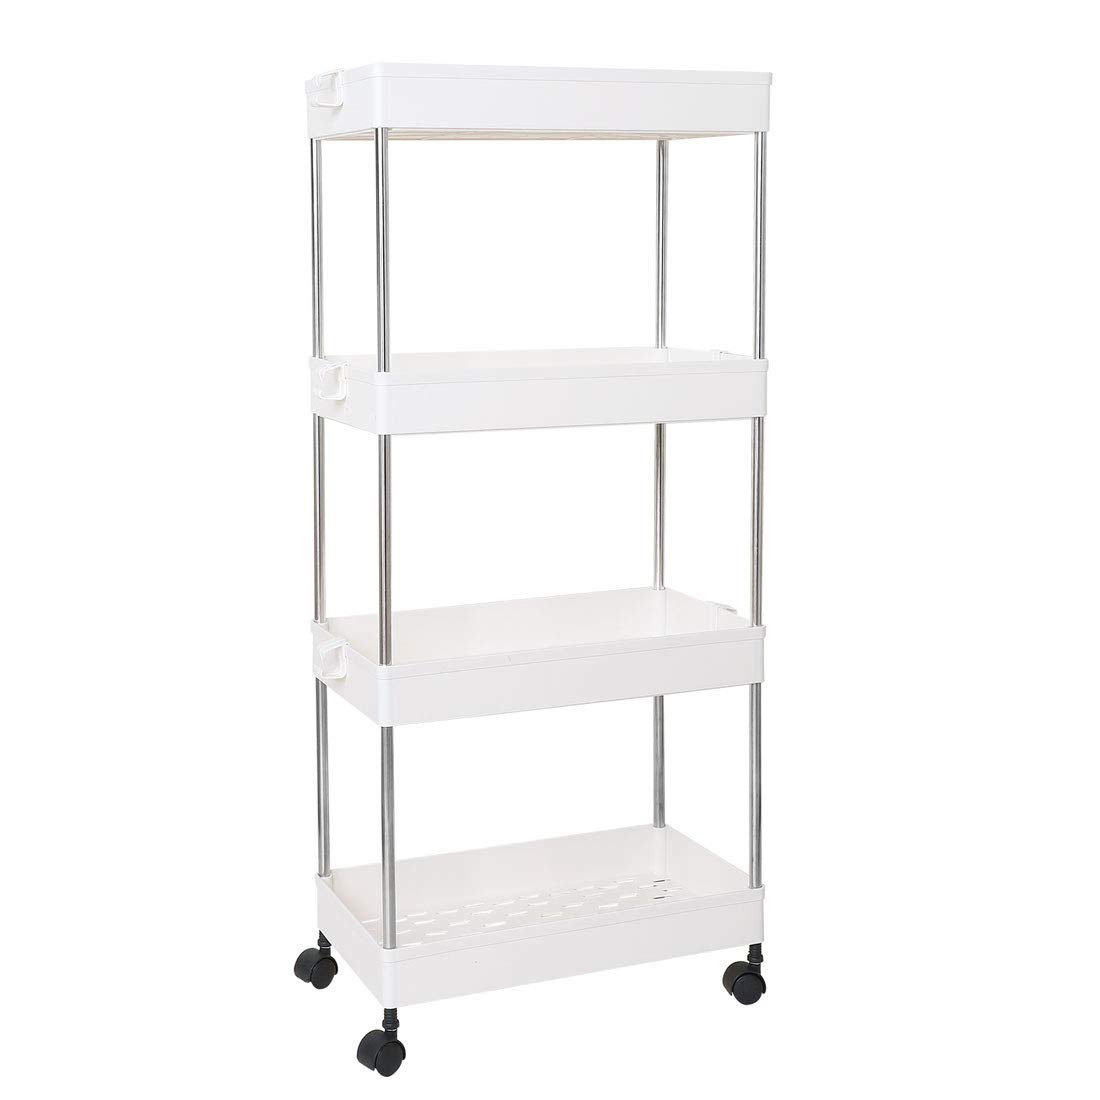 White 4 Tiers uxcell® 4 Tiers Storage Rolling Cart with Wheels,Slide Out Storage Organizer Rack Shelf Tower for Laundry Bathroom Kitchen, Pink